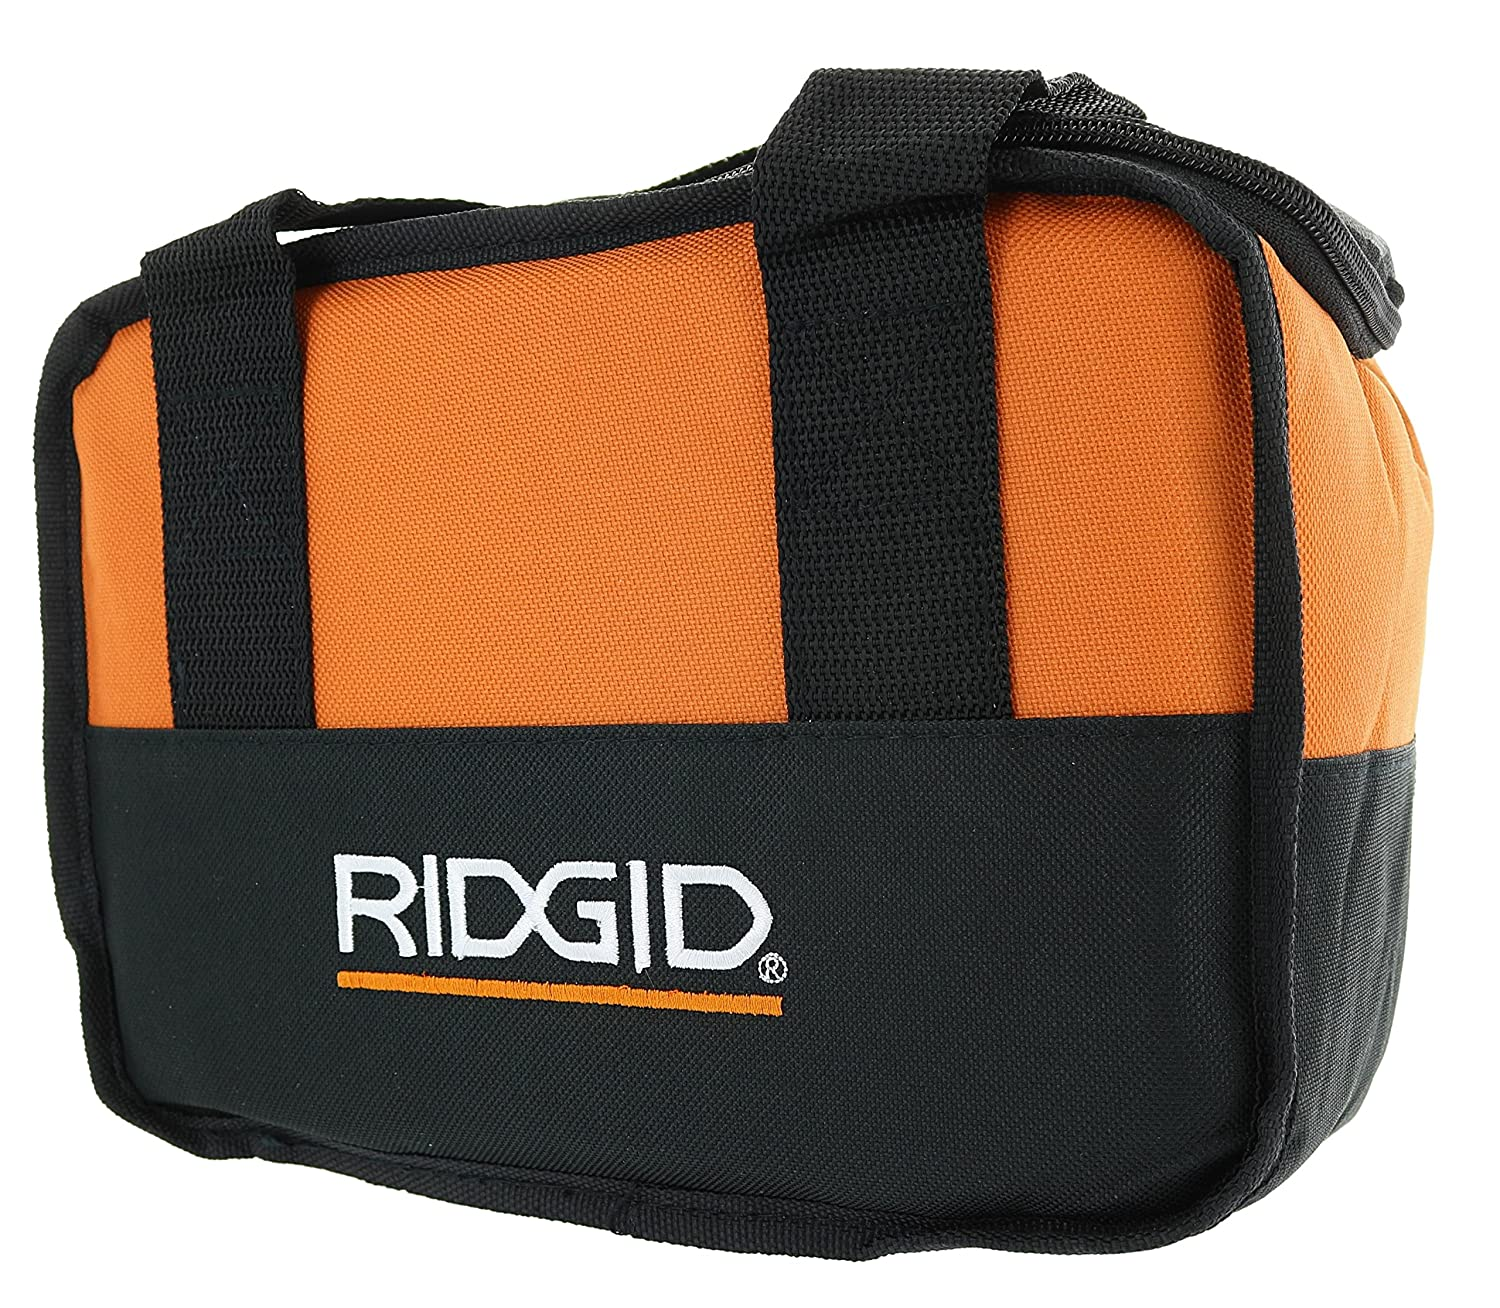 Ridgid Genuine OEM Soft-Sided Heavy Duty Cross X-Stitched Contractor's Tool Bag for 12V Tools (10 Inches x 7 Inches x 5 Inches)